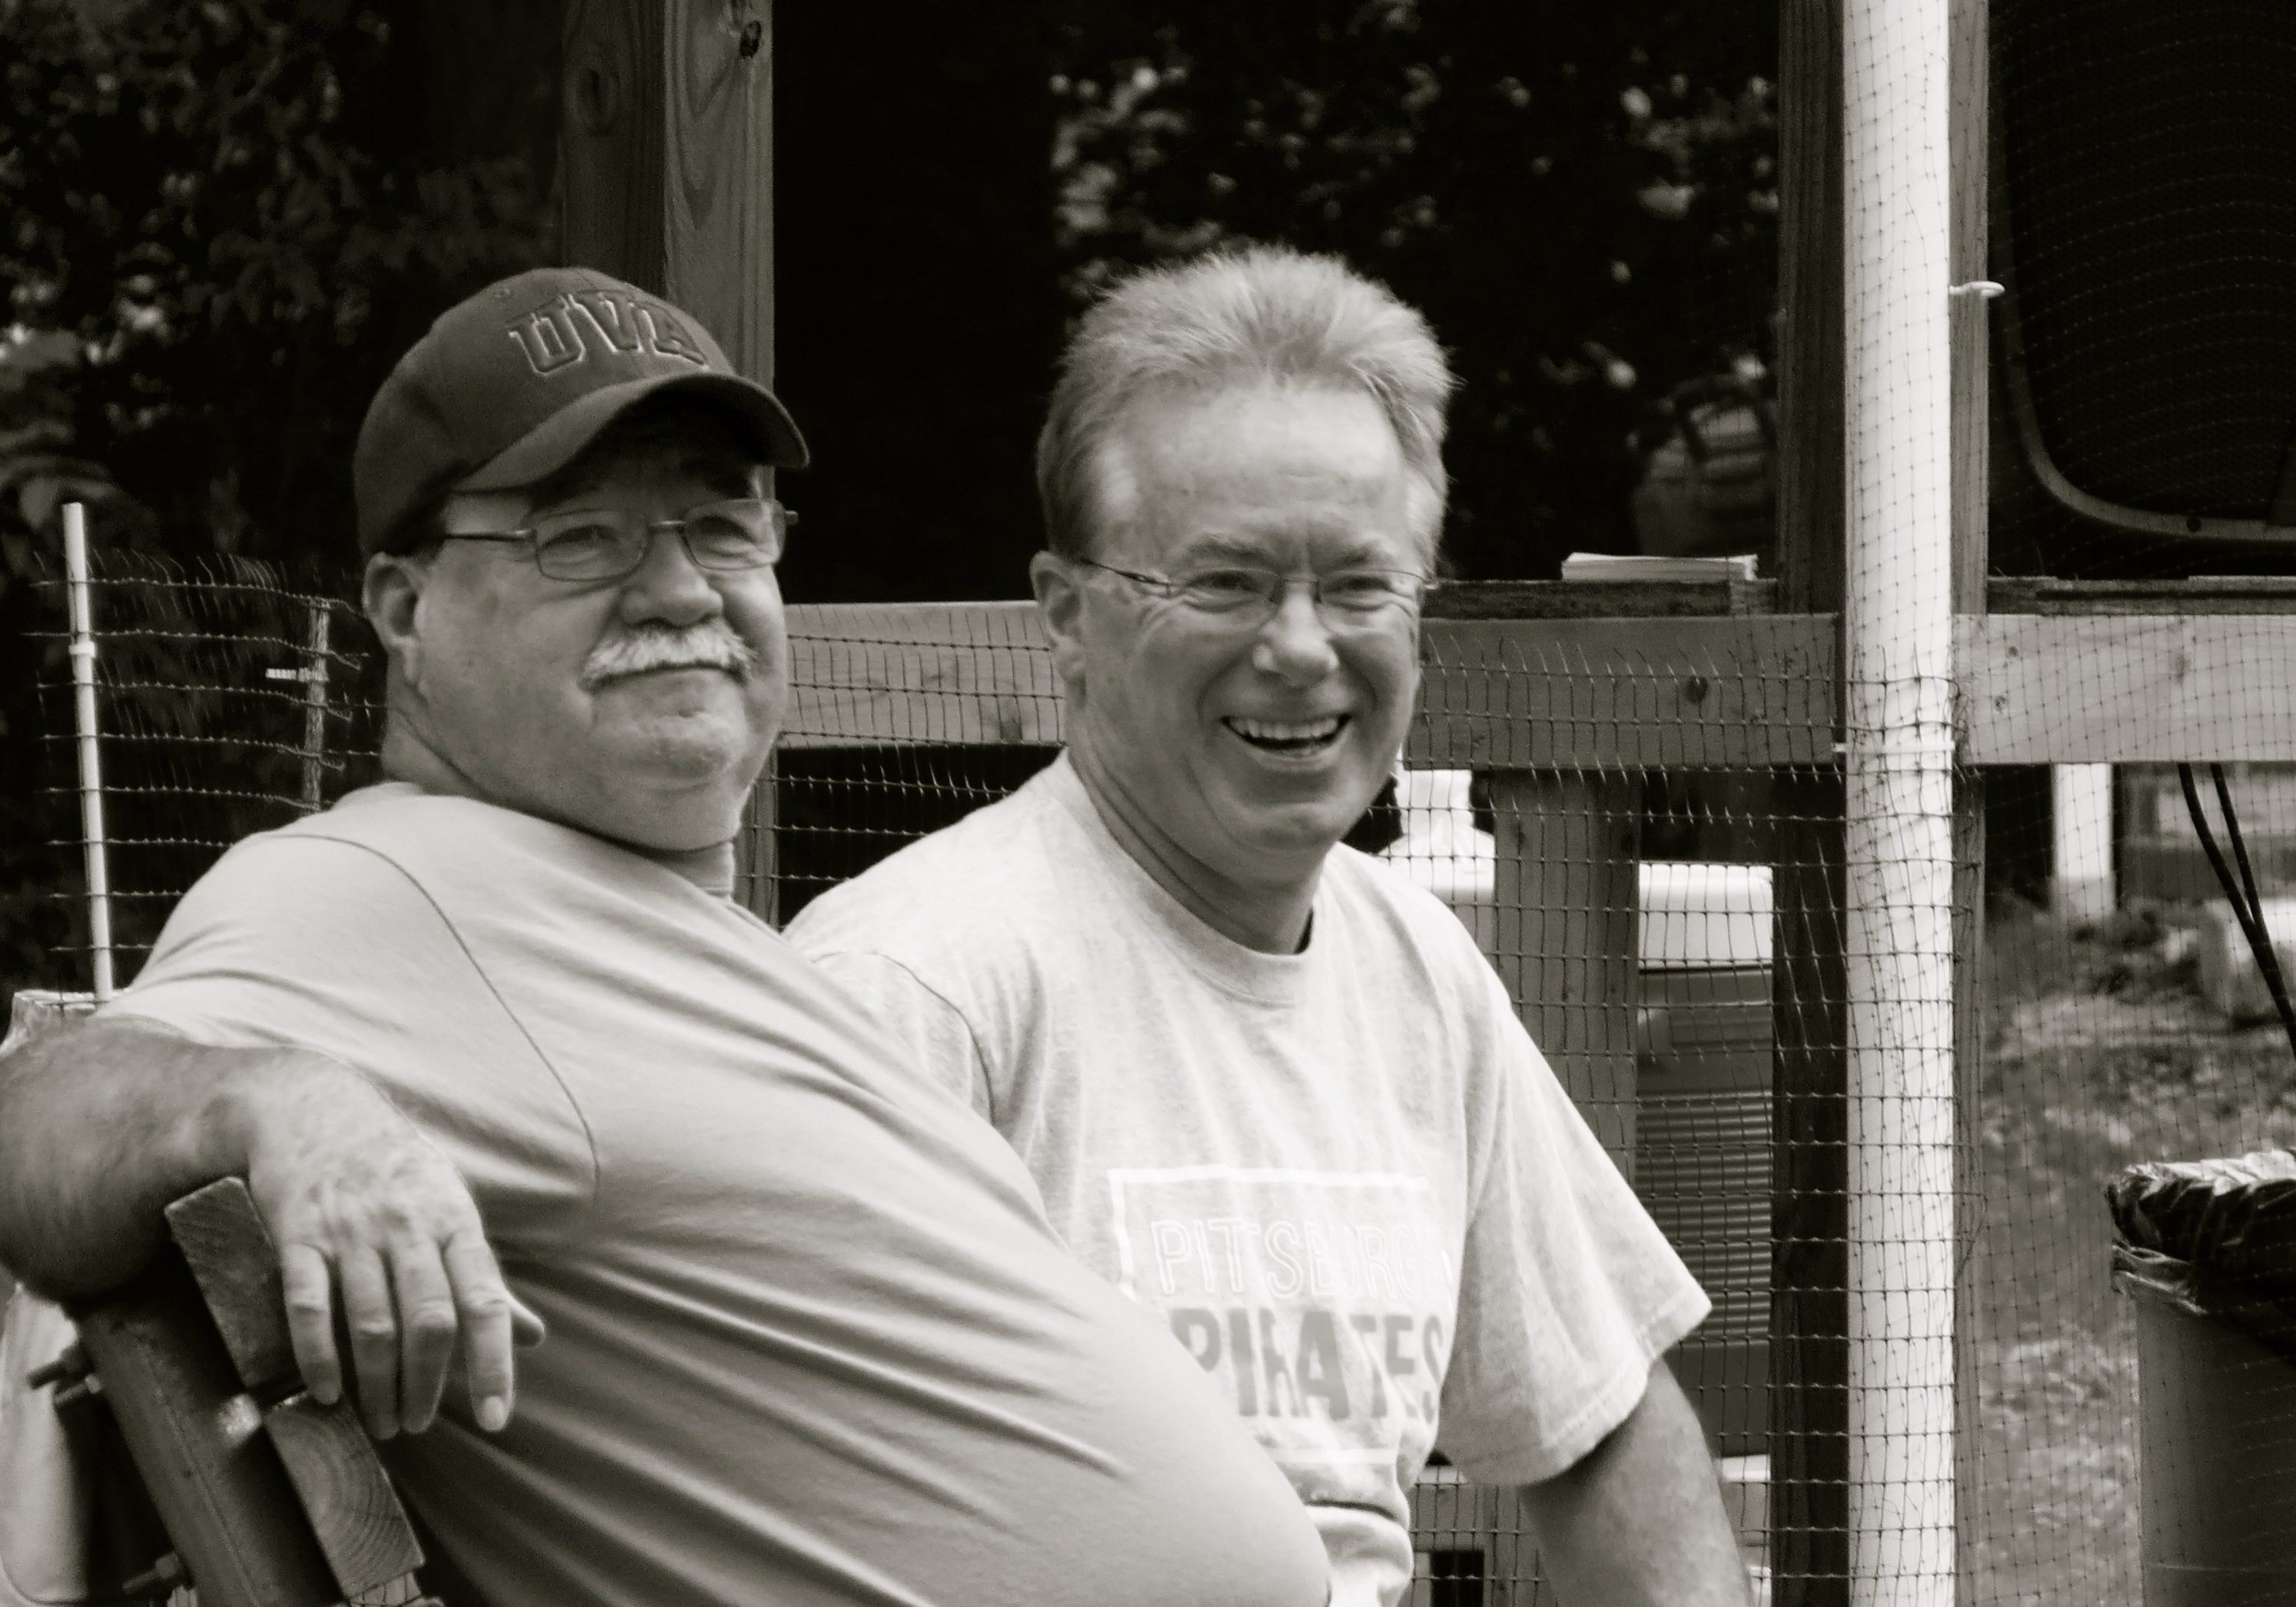 Childhood friends Tom  Freeman (left) & Dave Donaldson share a laugh.